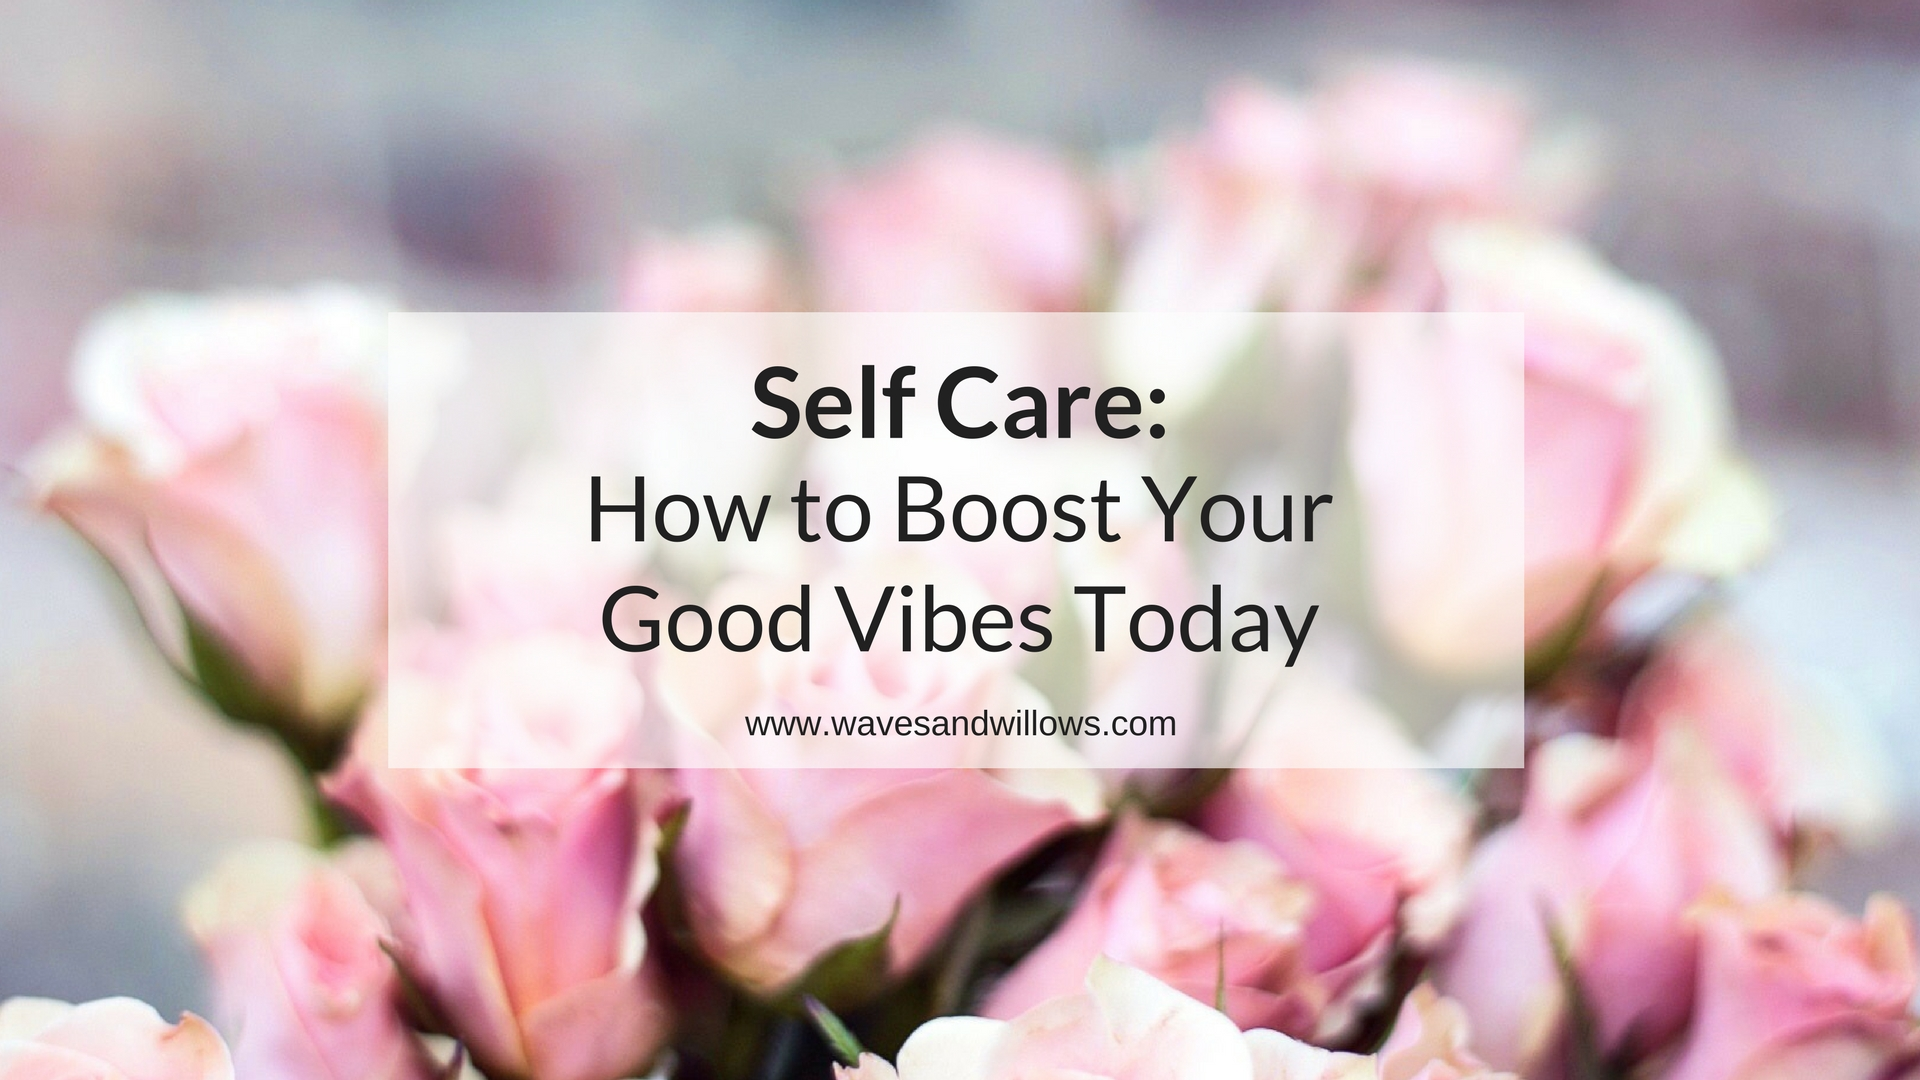 Self Care: How to Boost Your Good Vibes Today! www.wavesandwillows.com